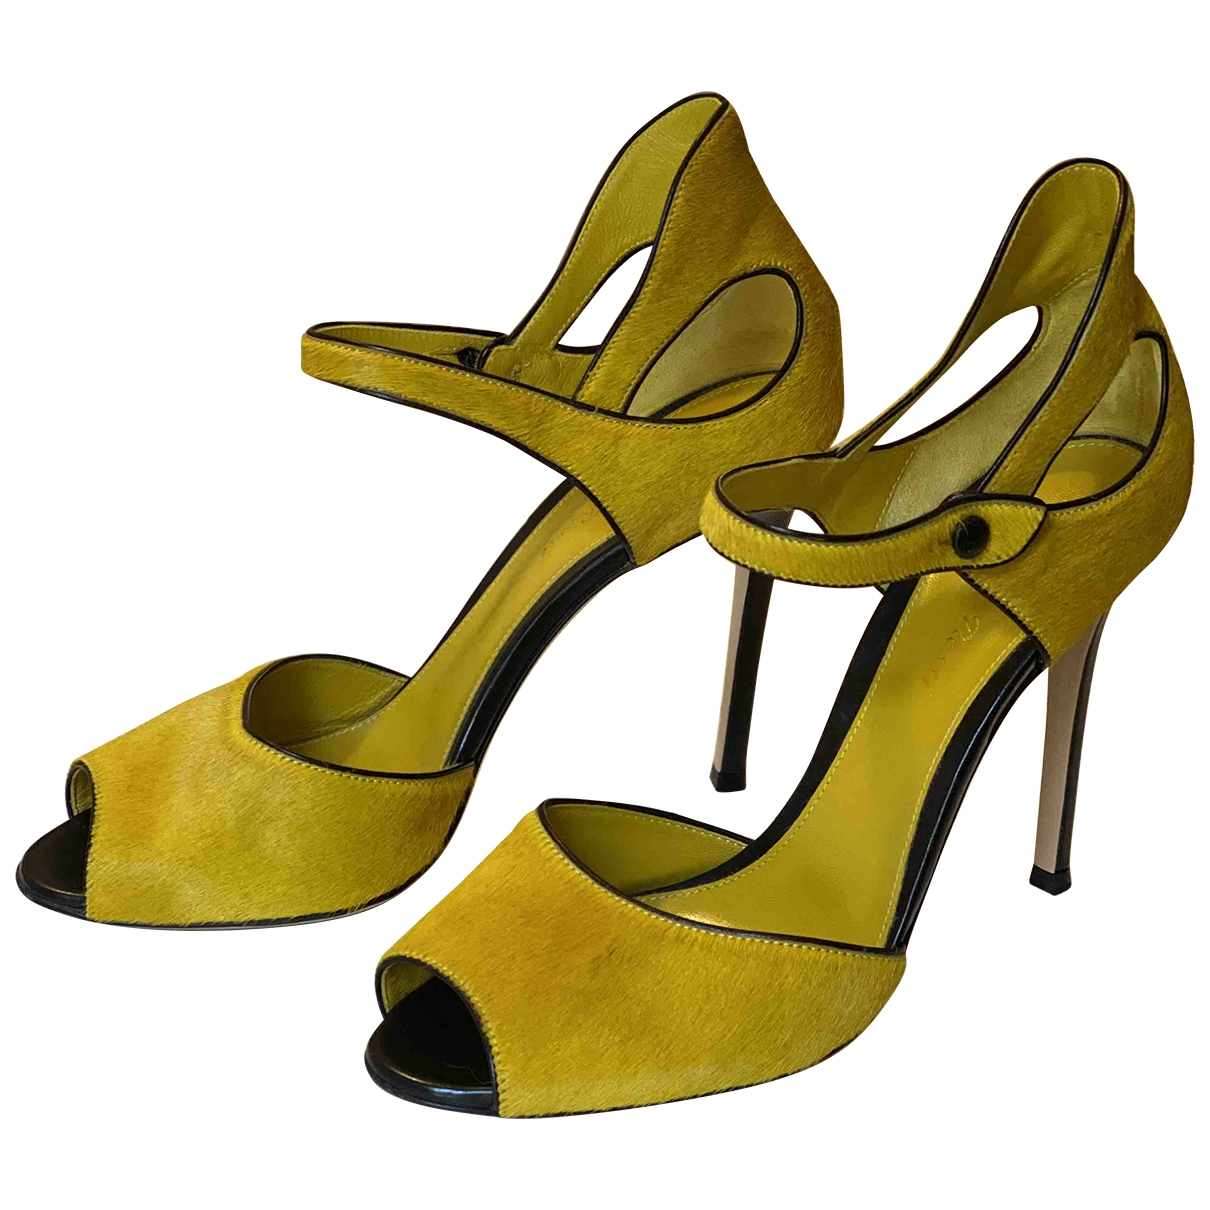 Gianvito Rossi \N Yellow Pony-style calfskin Sandals for Women 38 EU